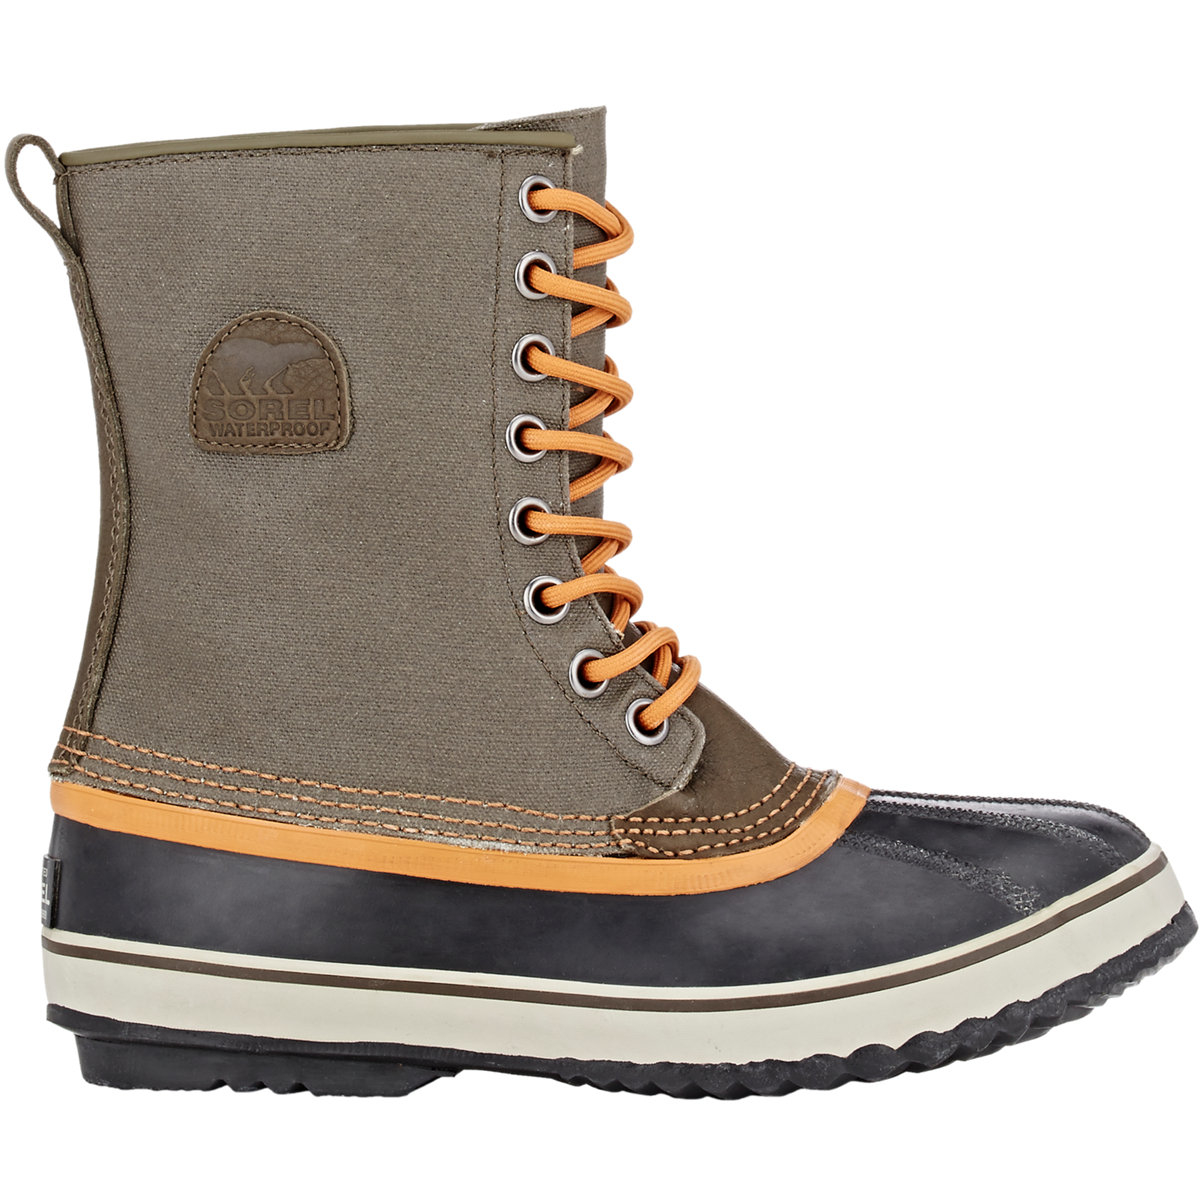 Mens 1964 Premium T CVS Snow Boots Sorel